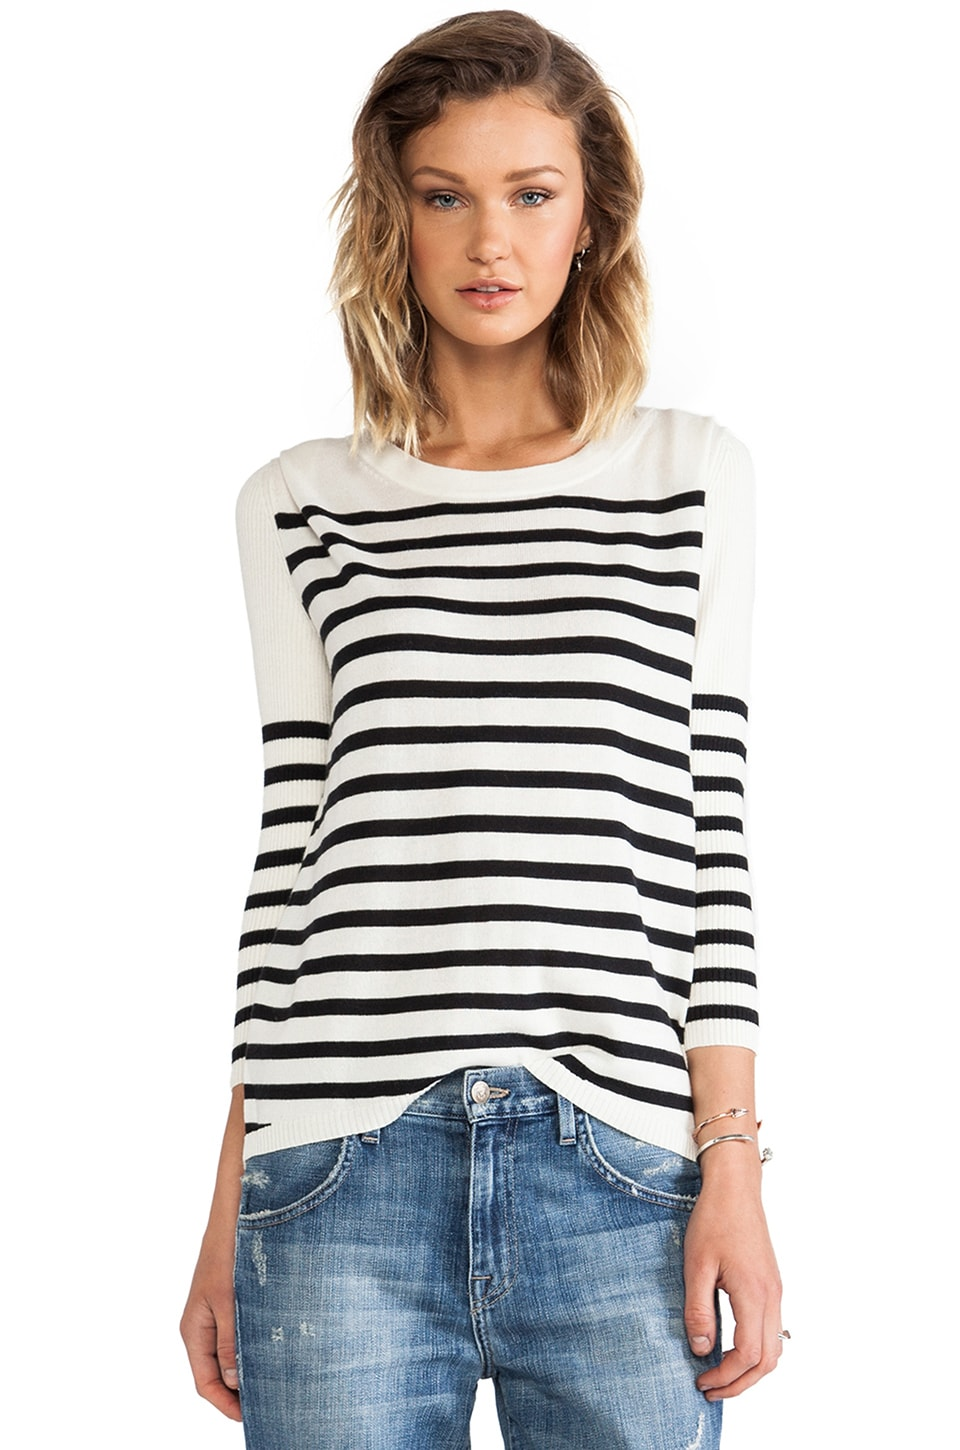 Pam & Gela Striped Pullover in Cream & Black Stripe